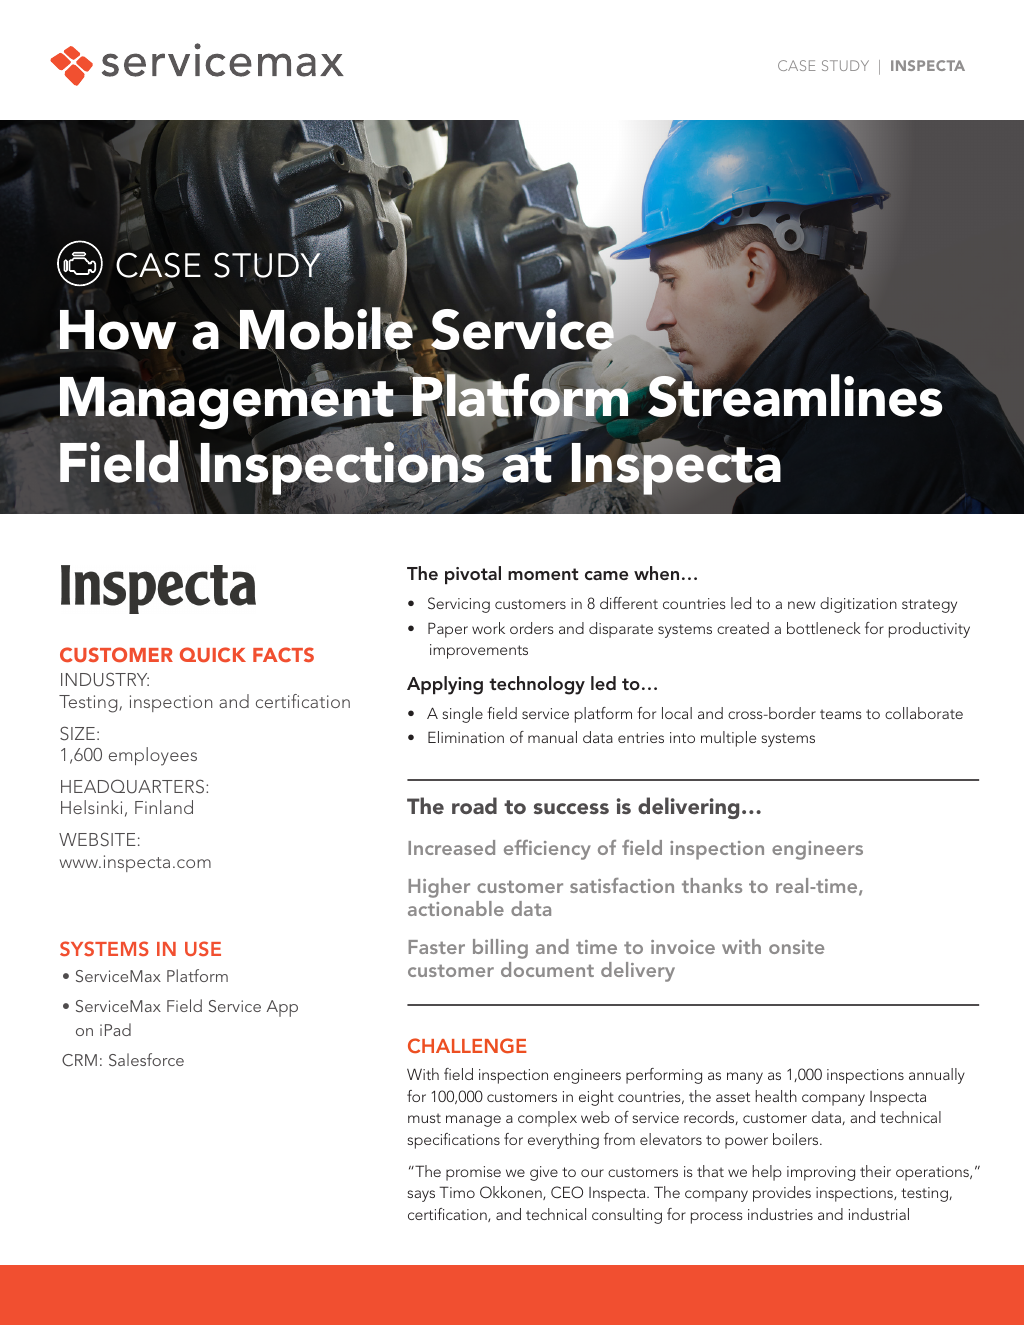 Servicemax For Inspection And Testing Services